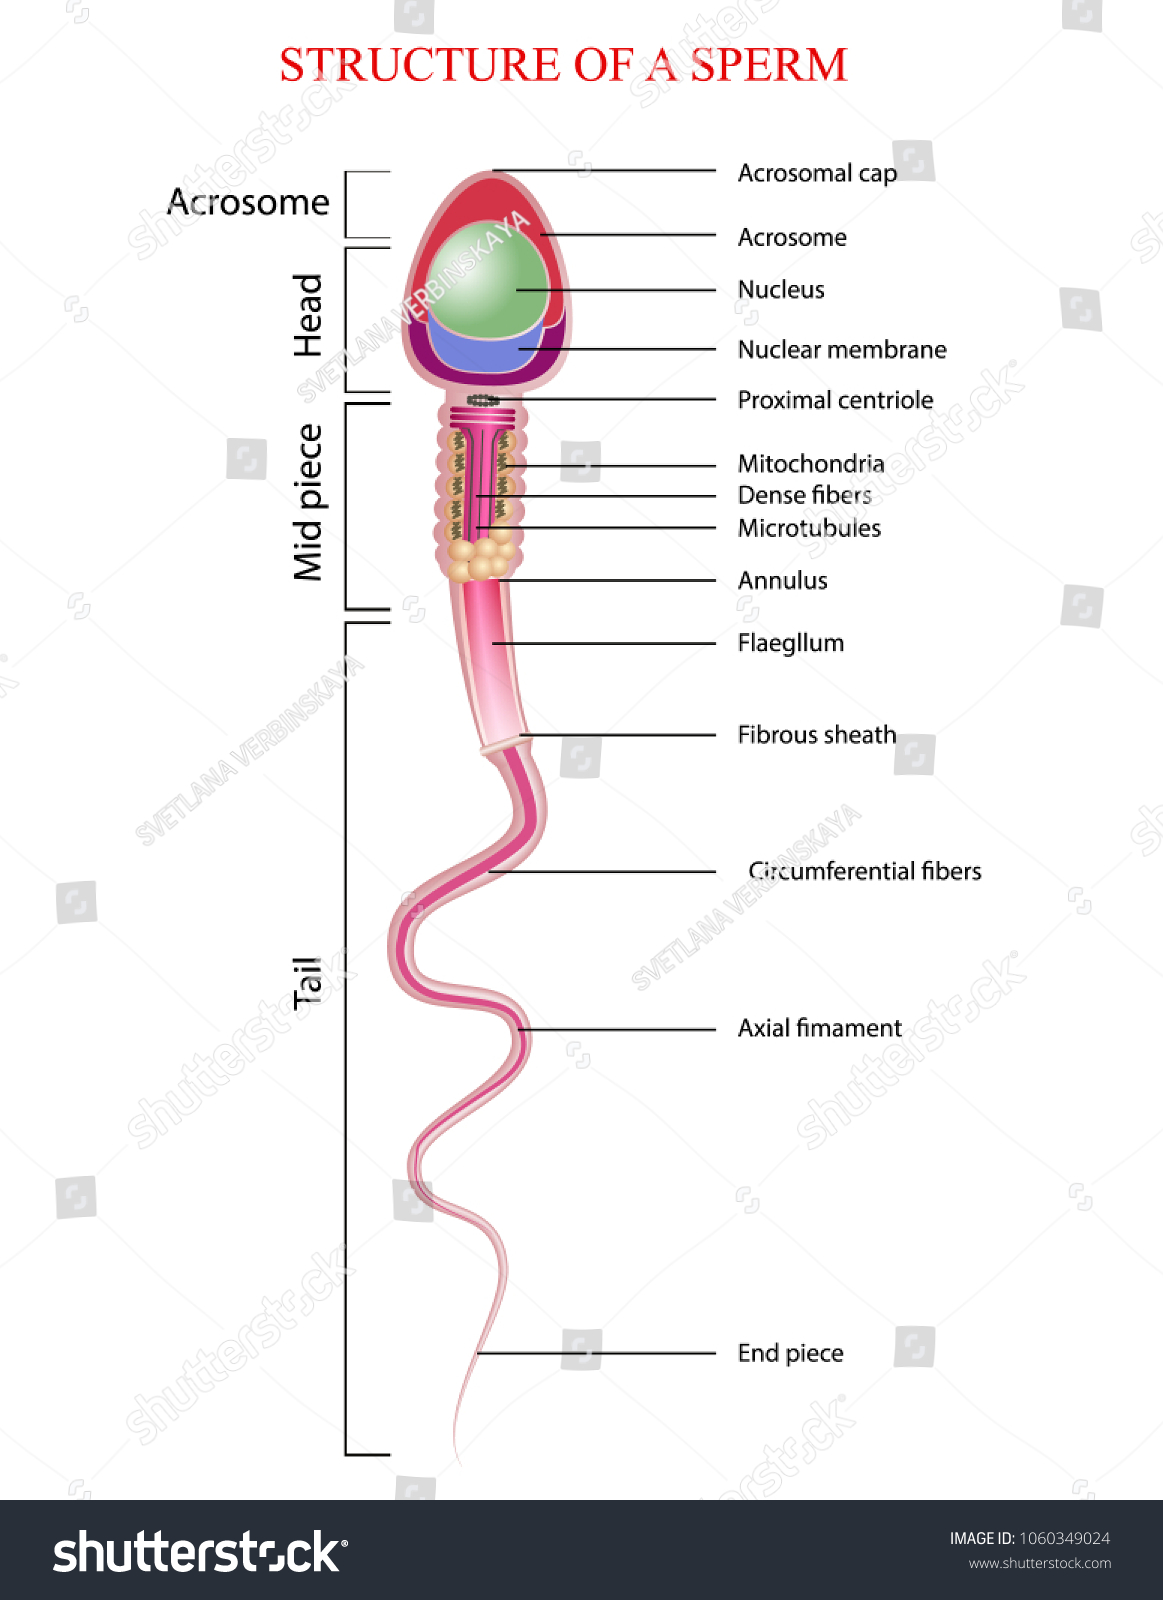 Human Sperm Cell Anatomy Structure Spermatozoon Stock Illustration ...